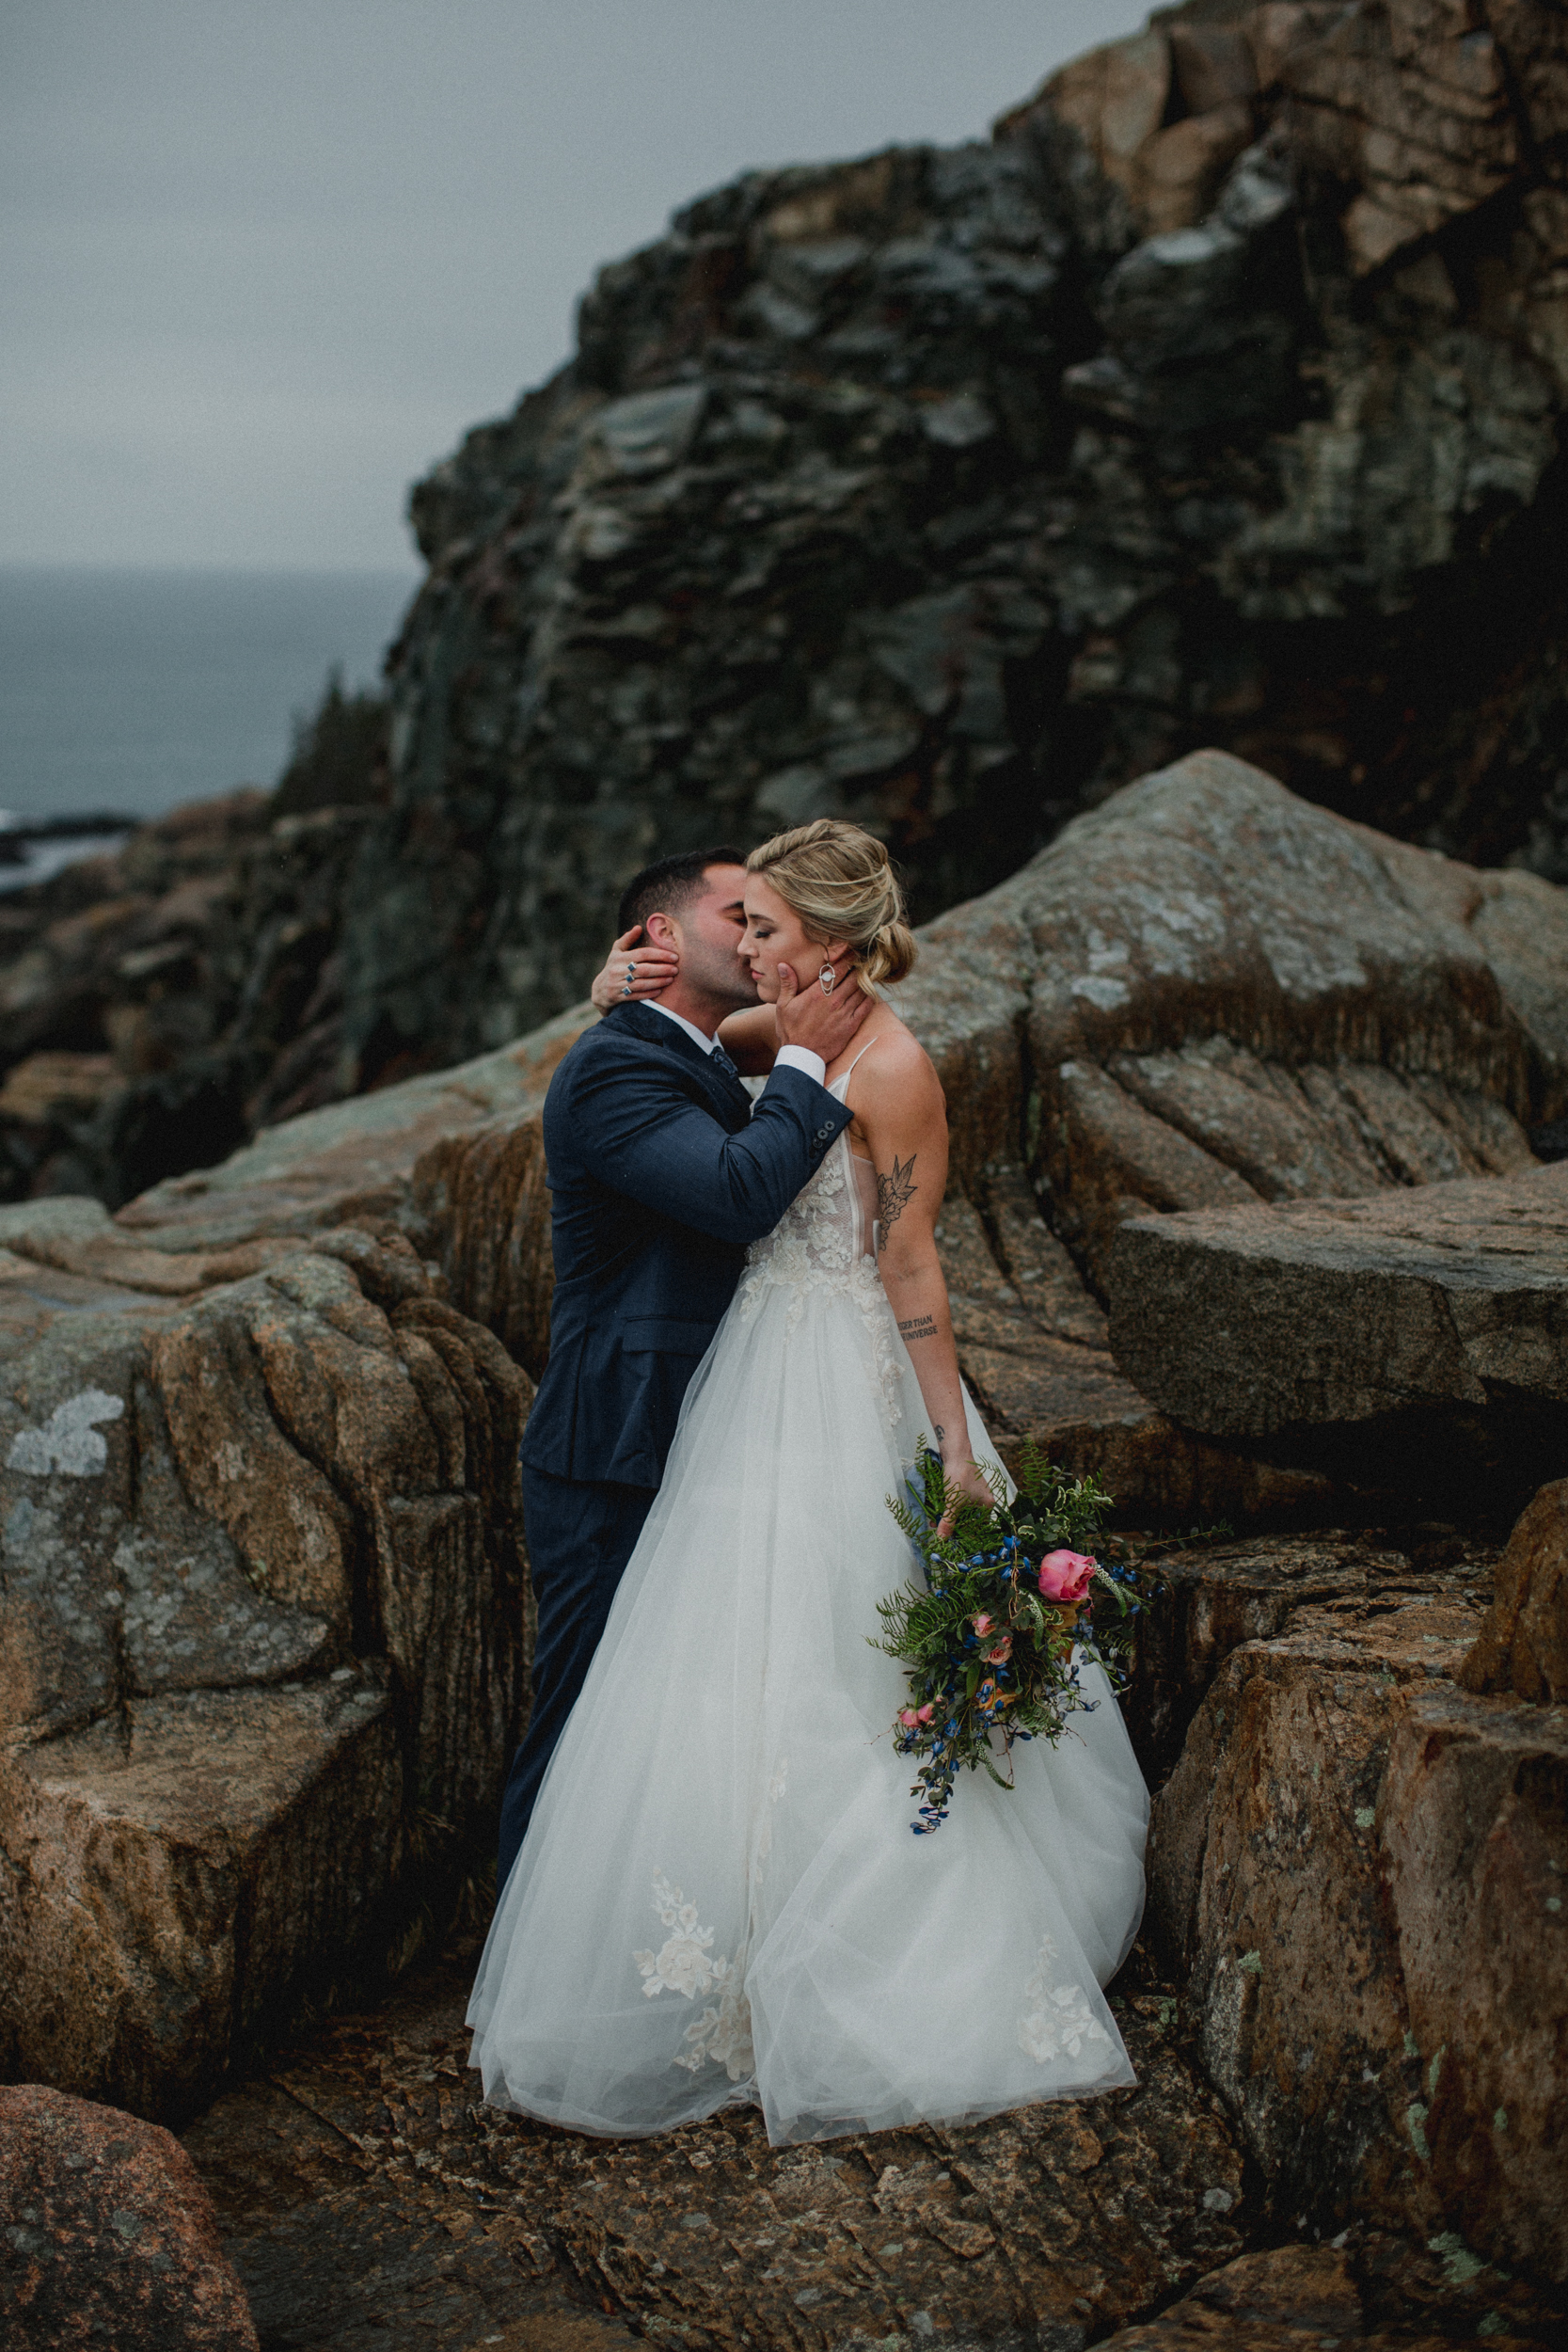 Acadia-National-Park-Wedding-34.jpg